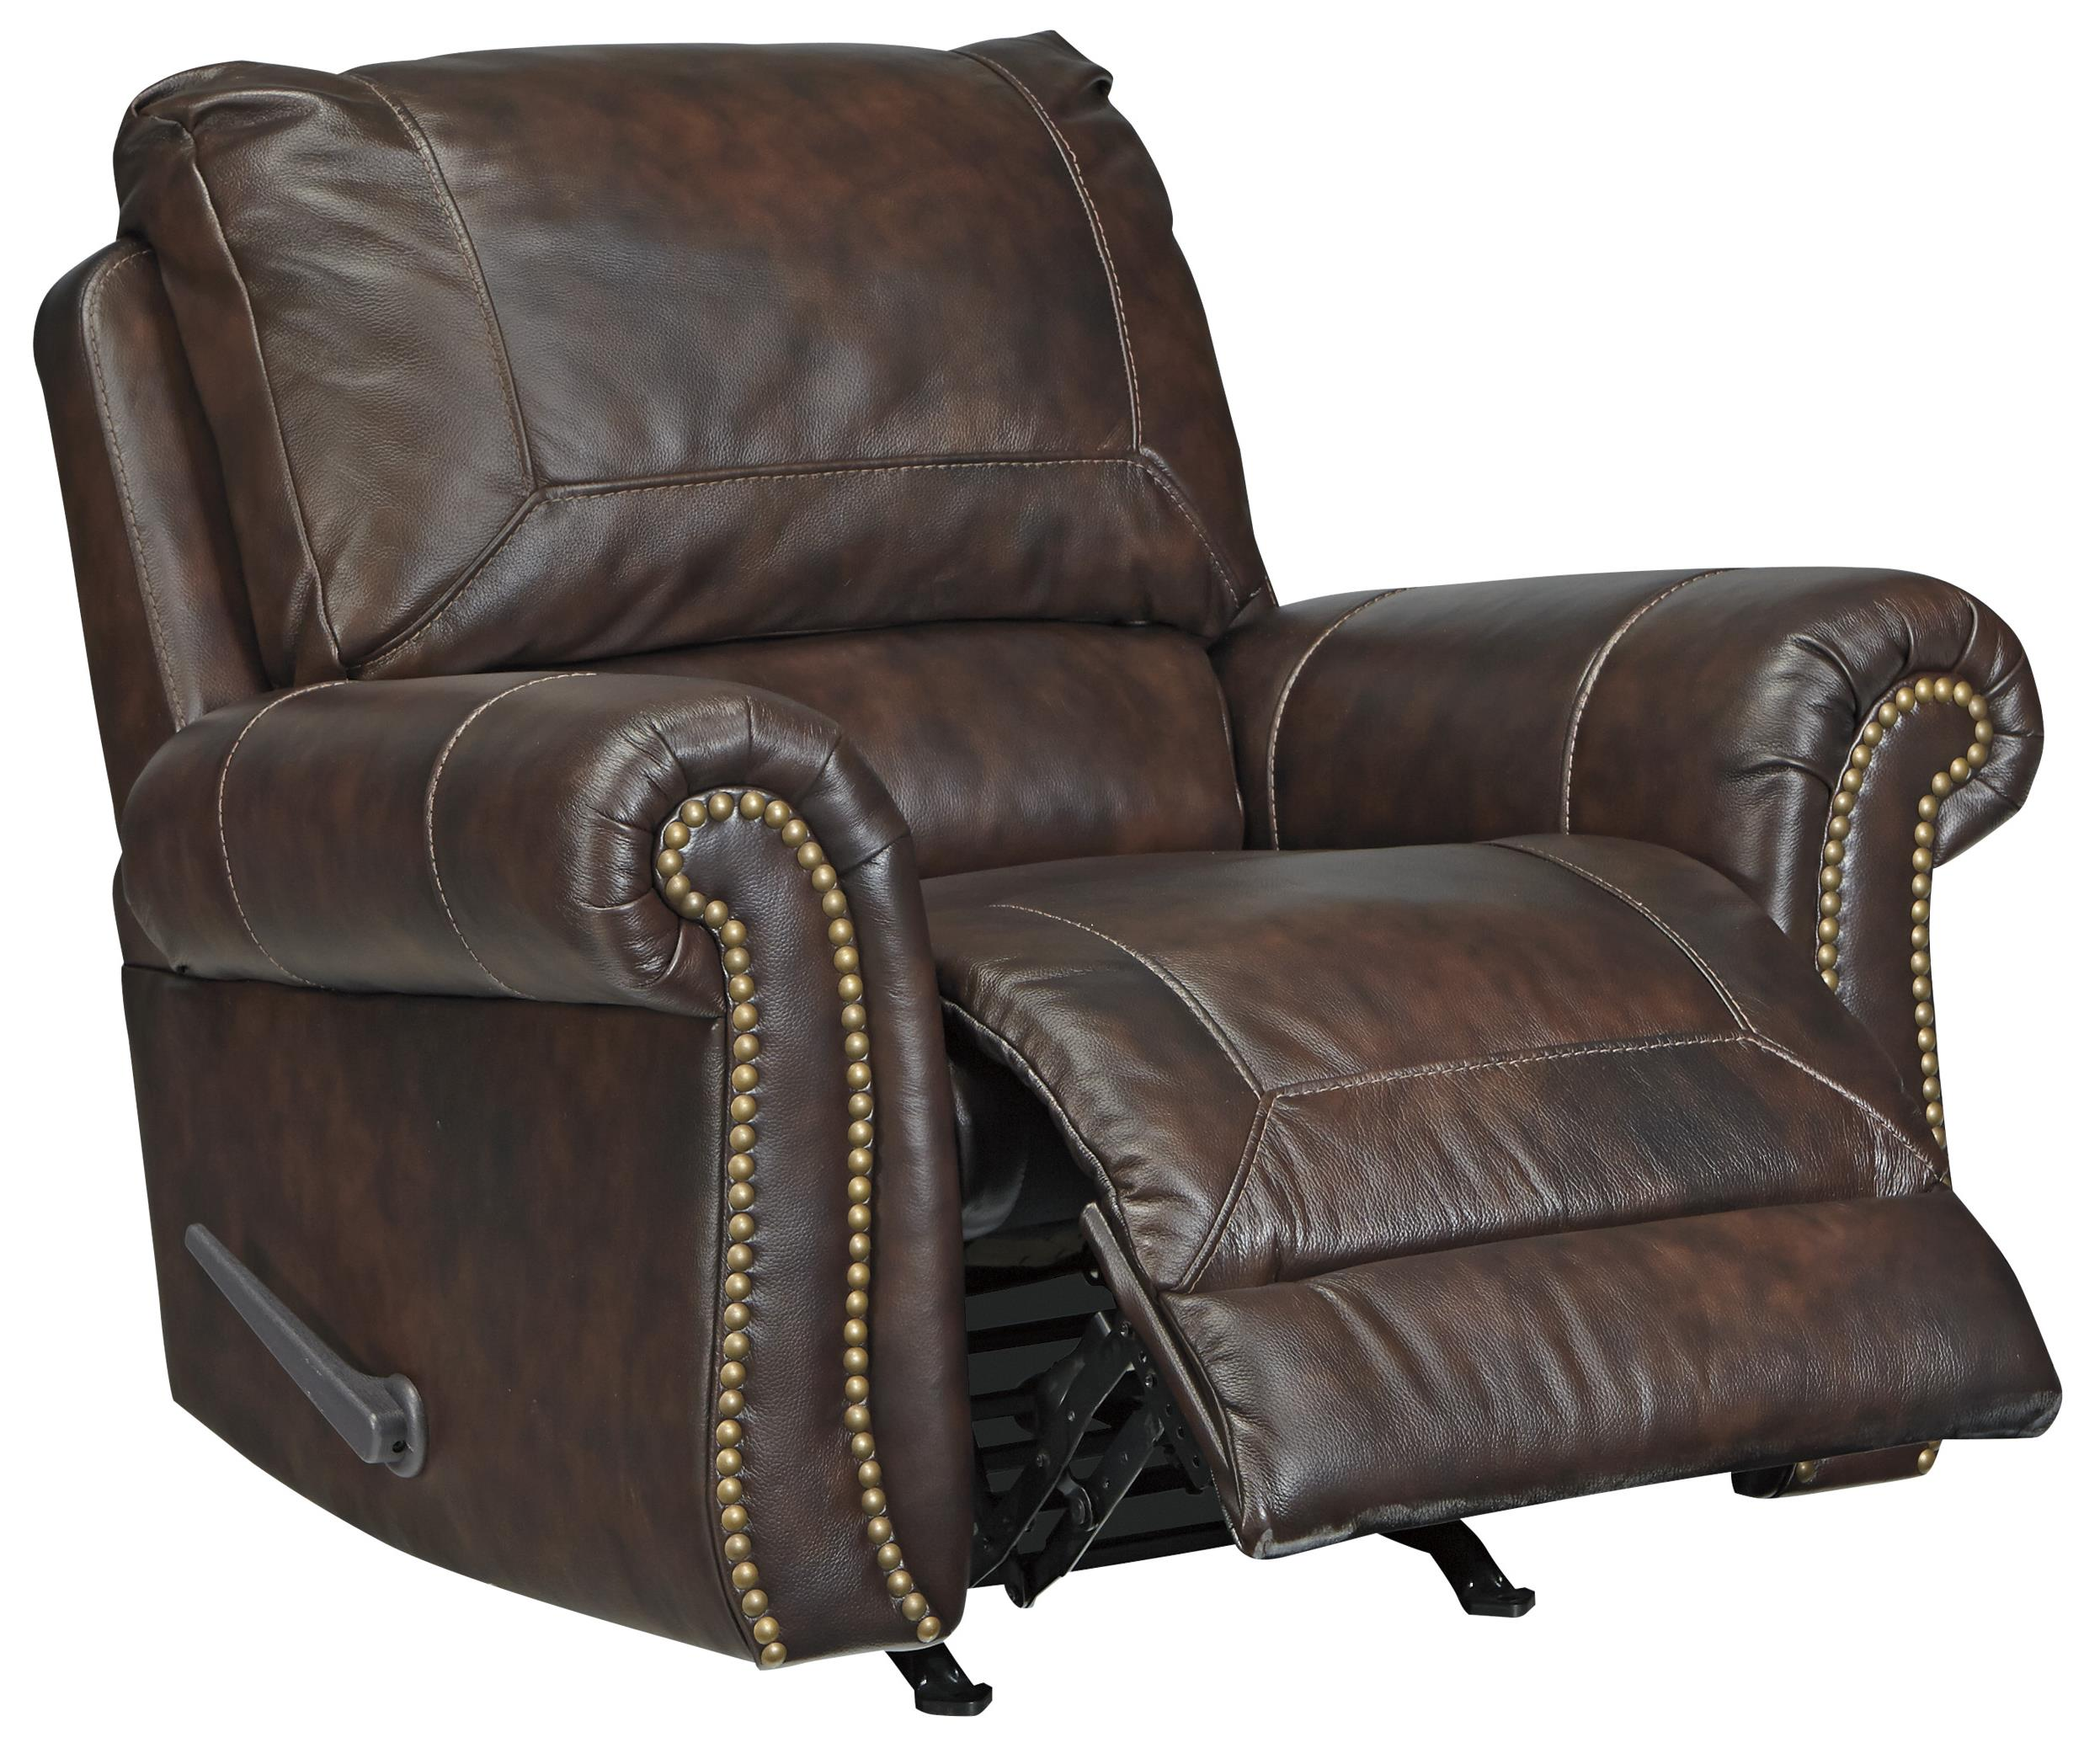 Traditional Leather Match Rocker Recliner With Rolled Arms Amp Nailhead Trim By Signature Design